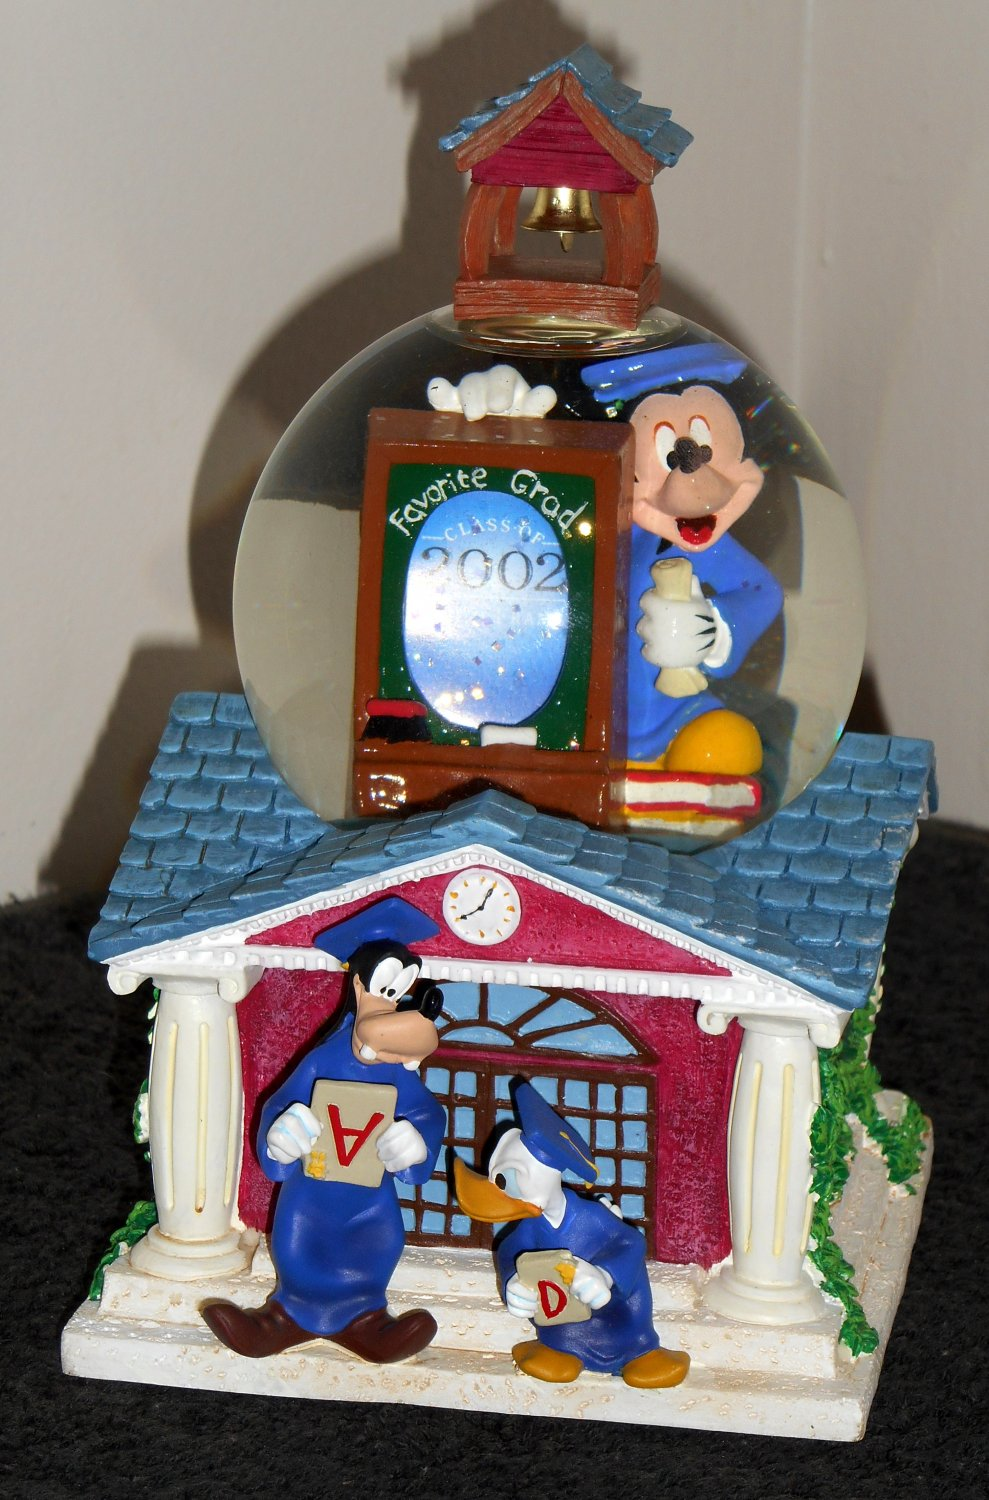 Mickey Mouse Musical Graduation Water Snow Globe Photo Goofy Donald Duck Pomp and Circumstance